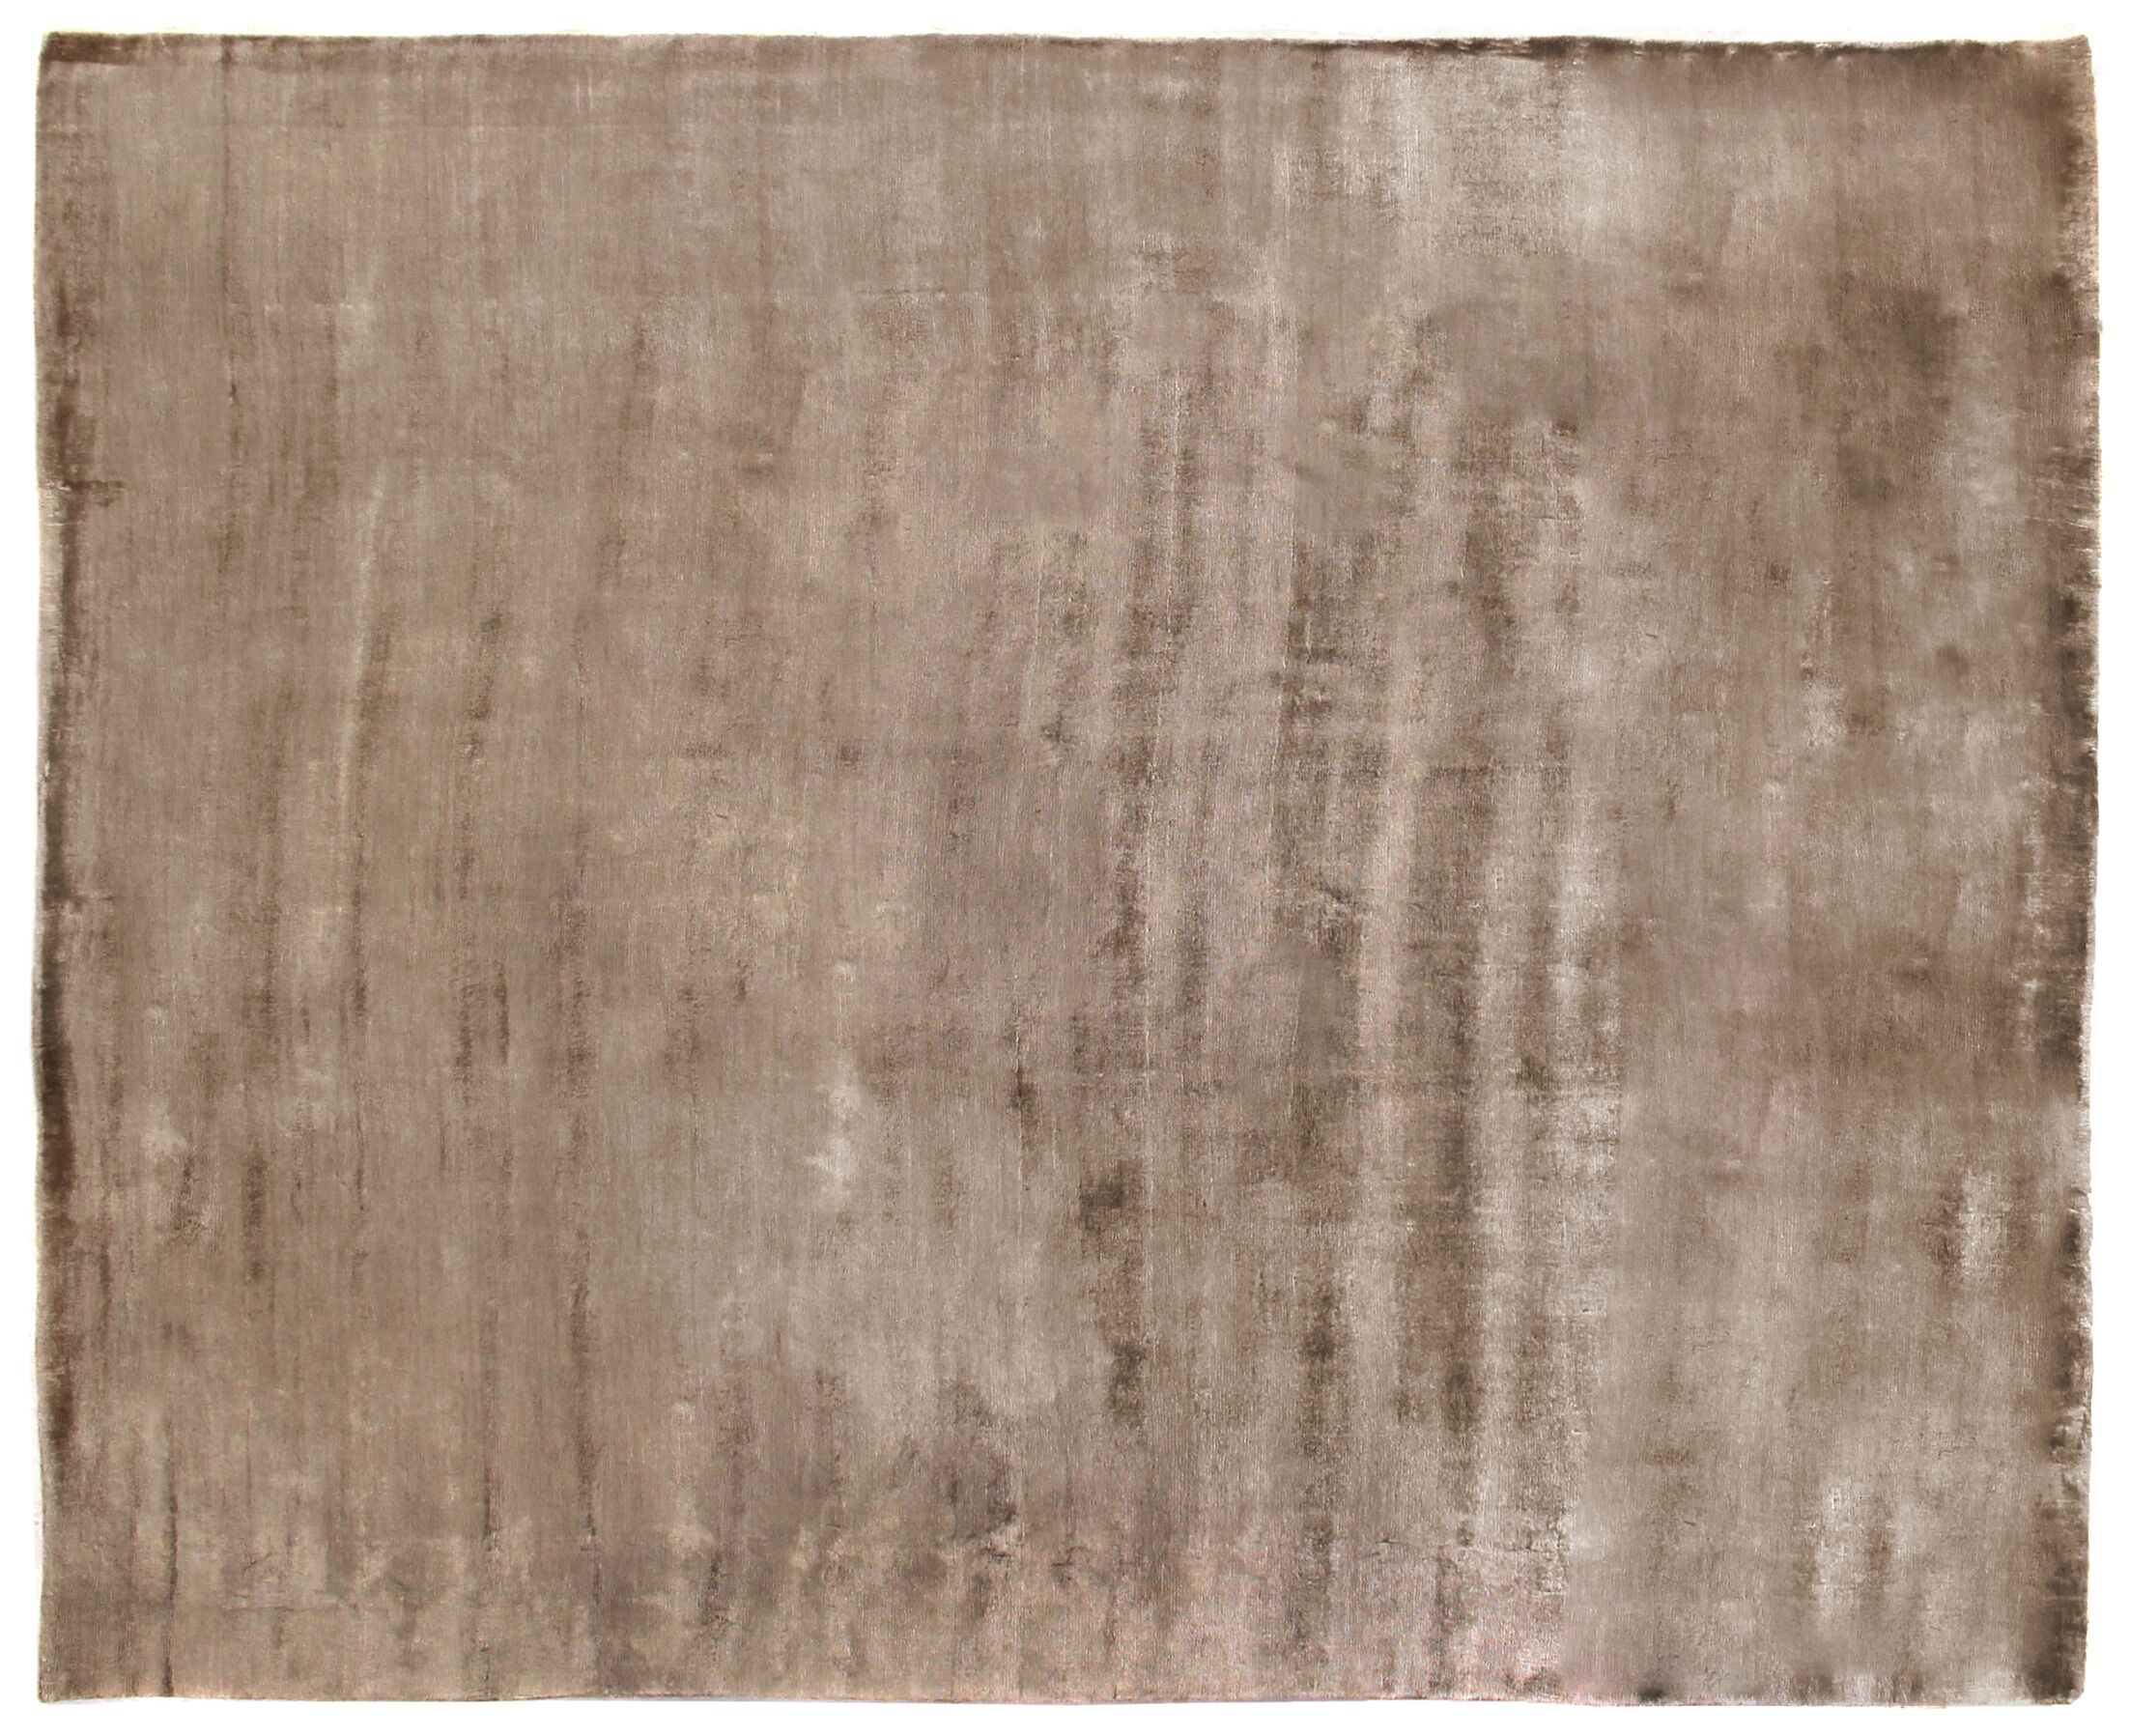 Purity Hand-Knotted Silk Brown Area Rug Rug Size: Rectangle 14' x 18'